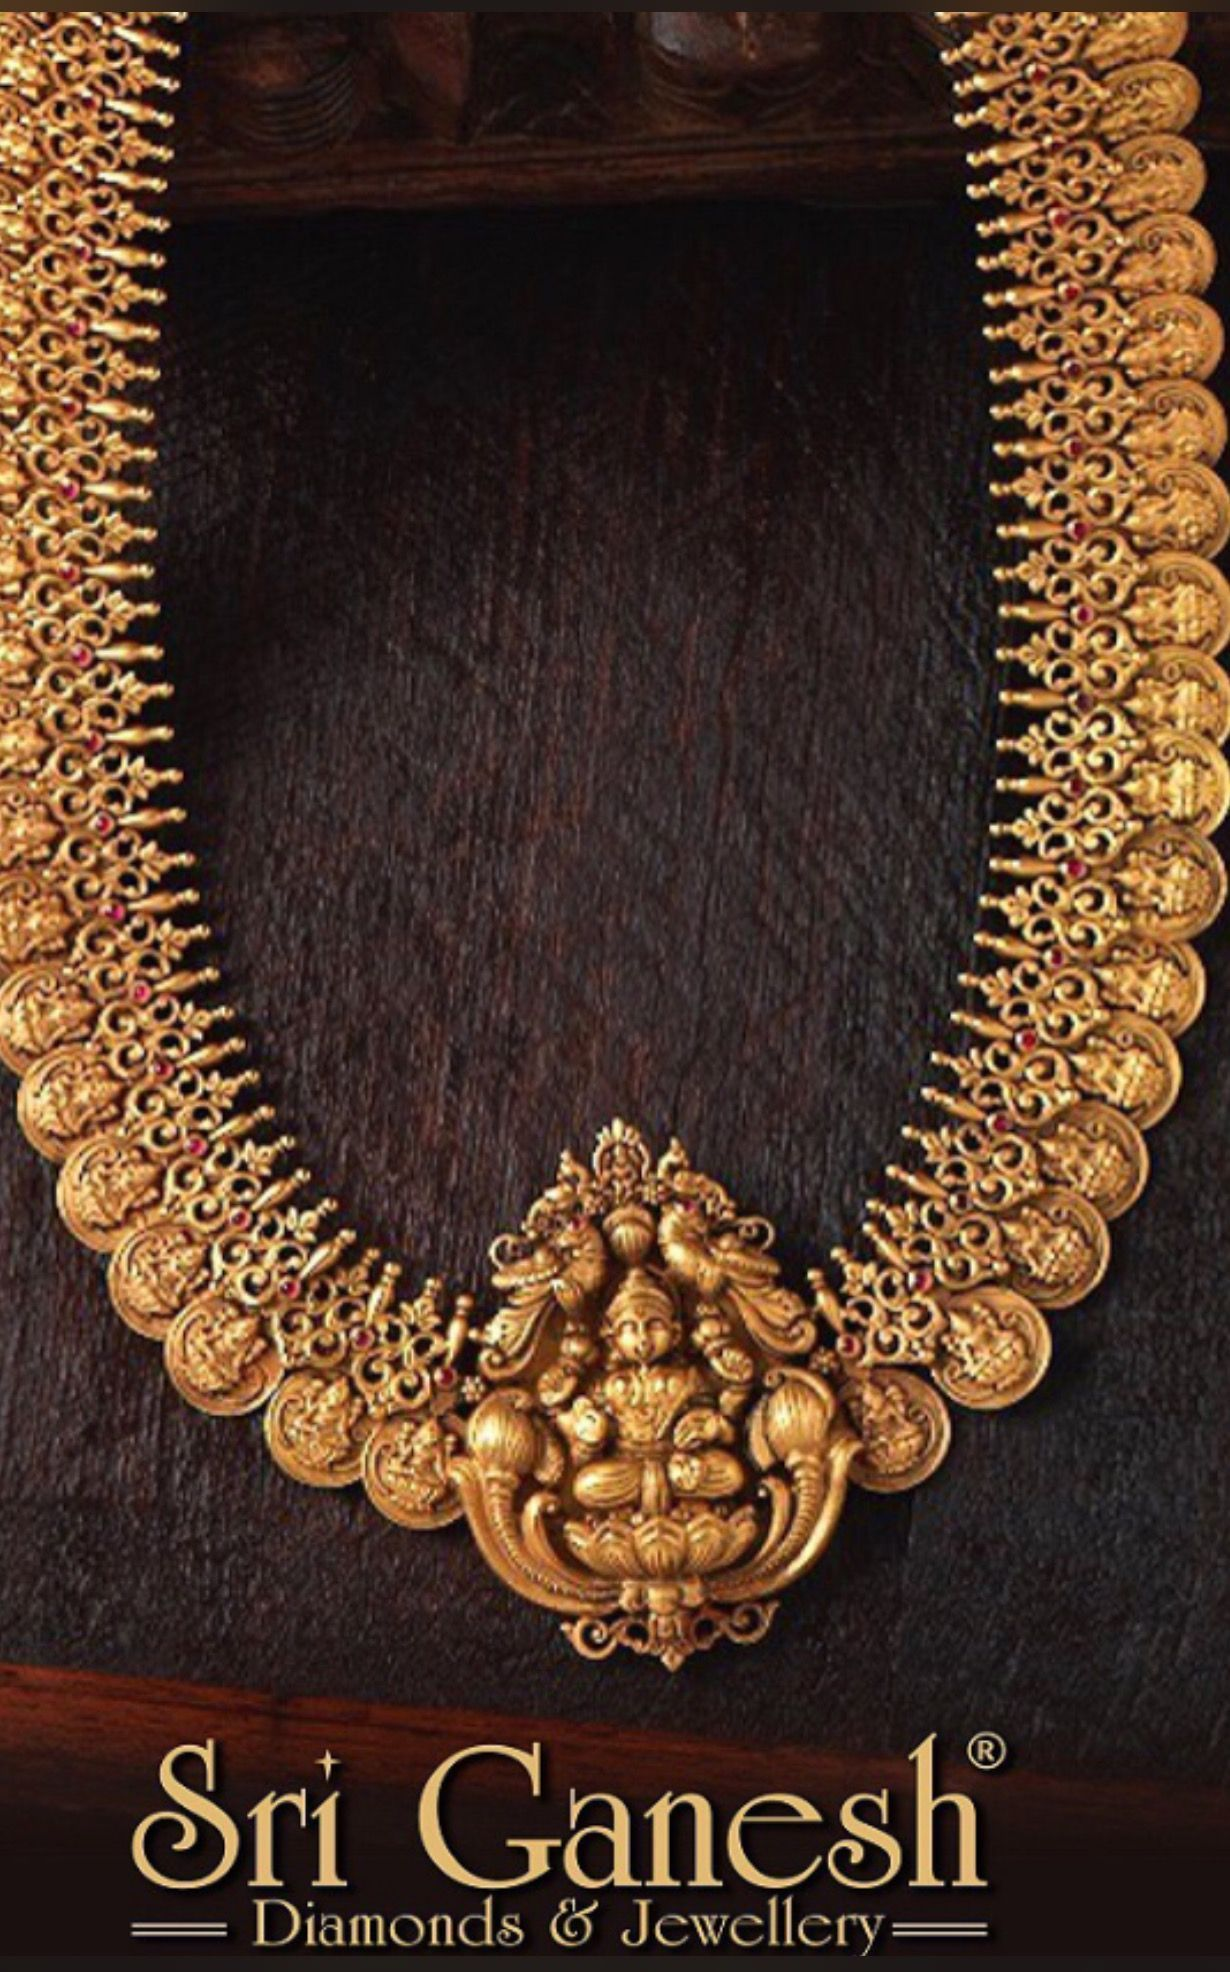 Anticgoldjewellery blouse models pinterest indian jewelry